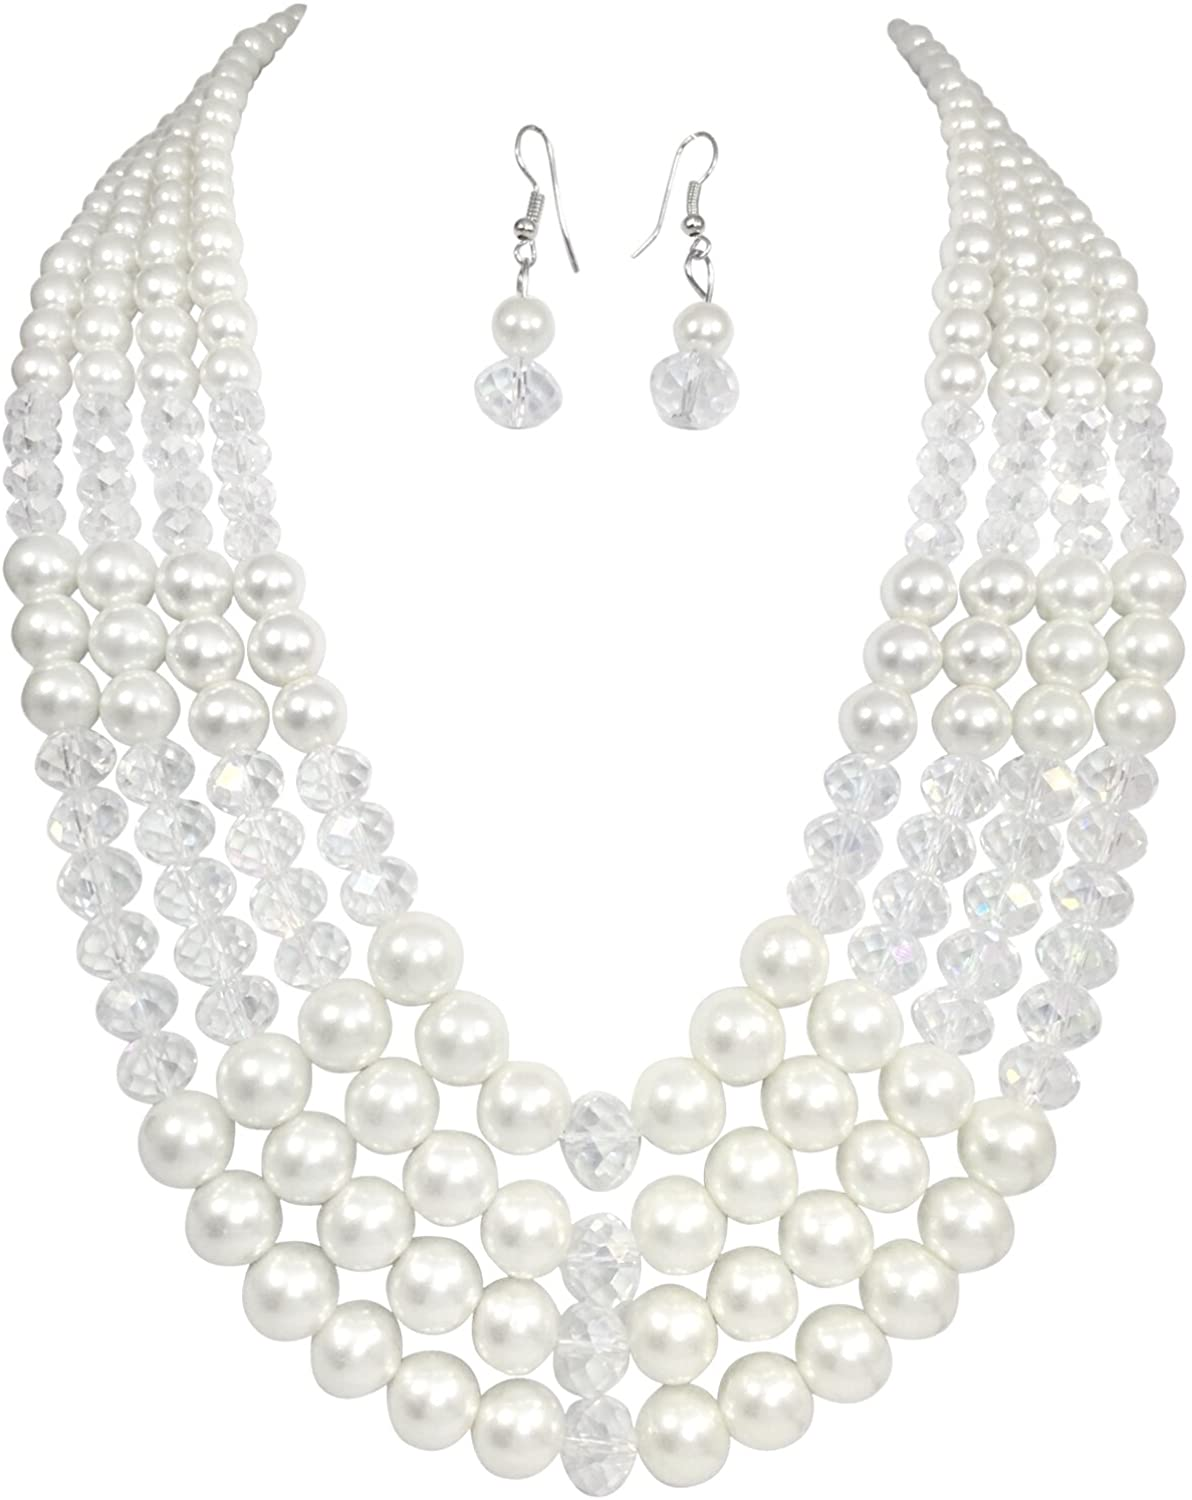 Layered Glass Imitation Pearl & AB Glass Beaded Necklace and Earrings Set